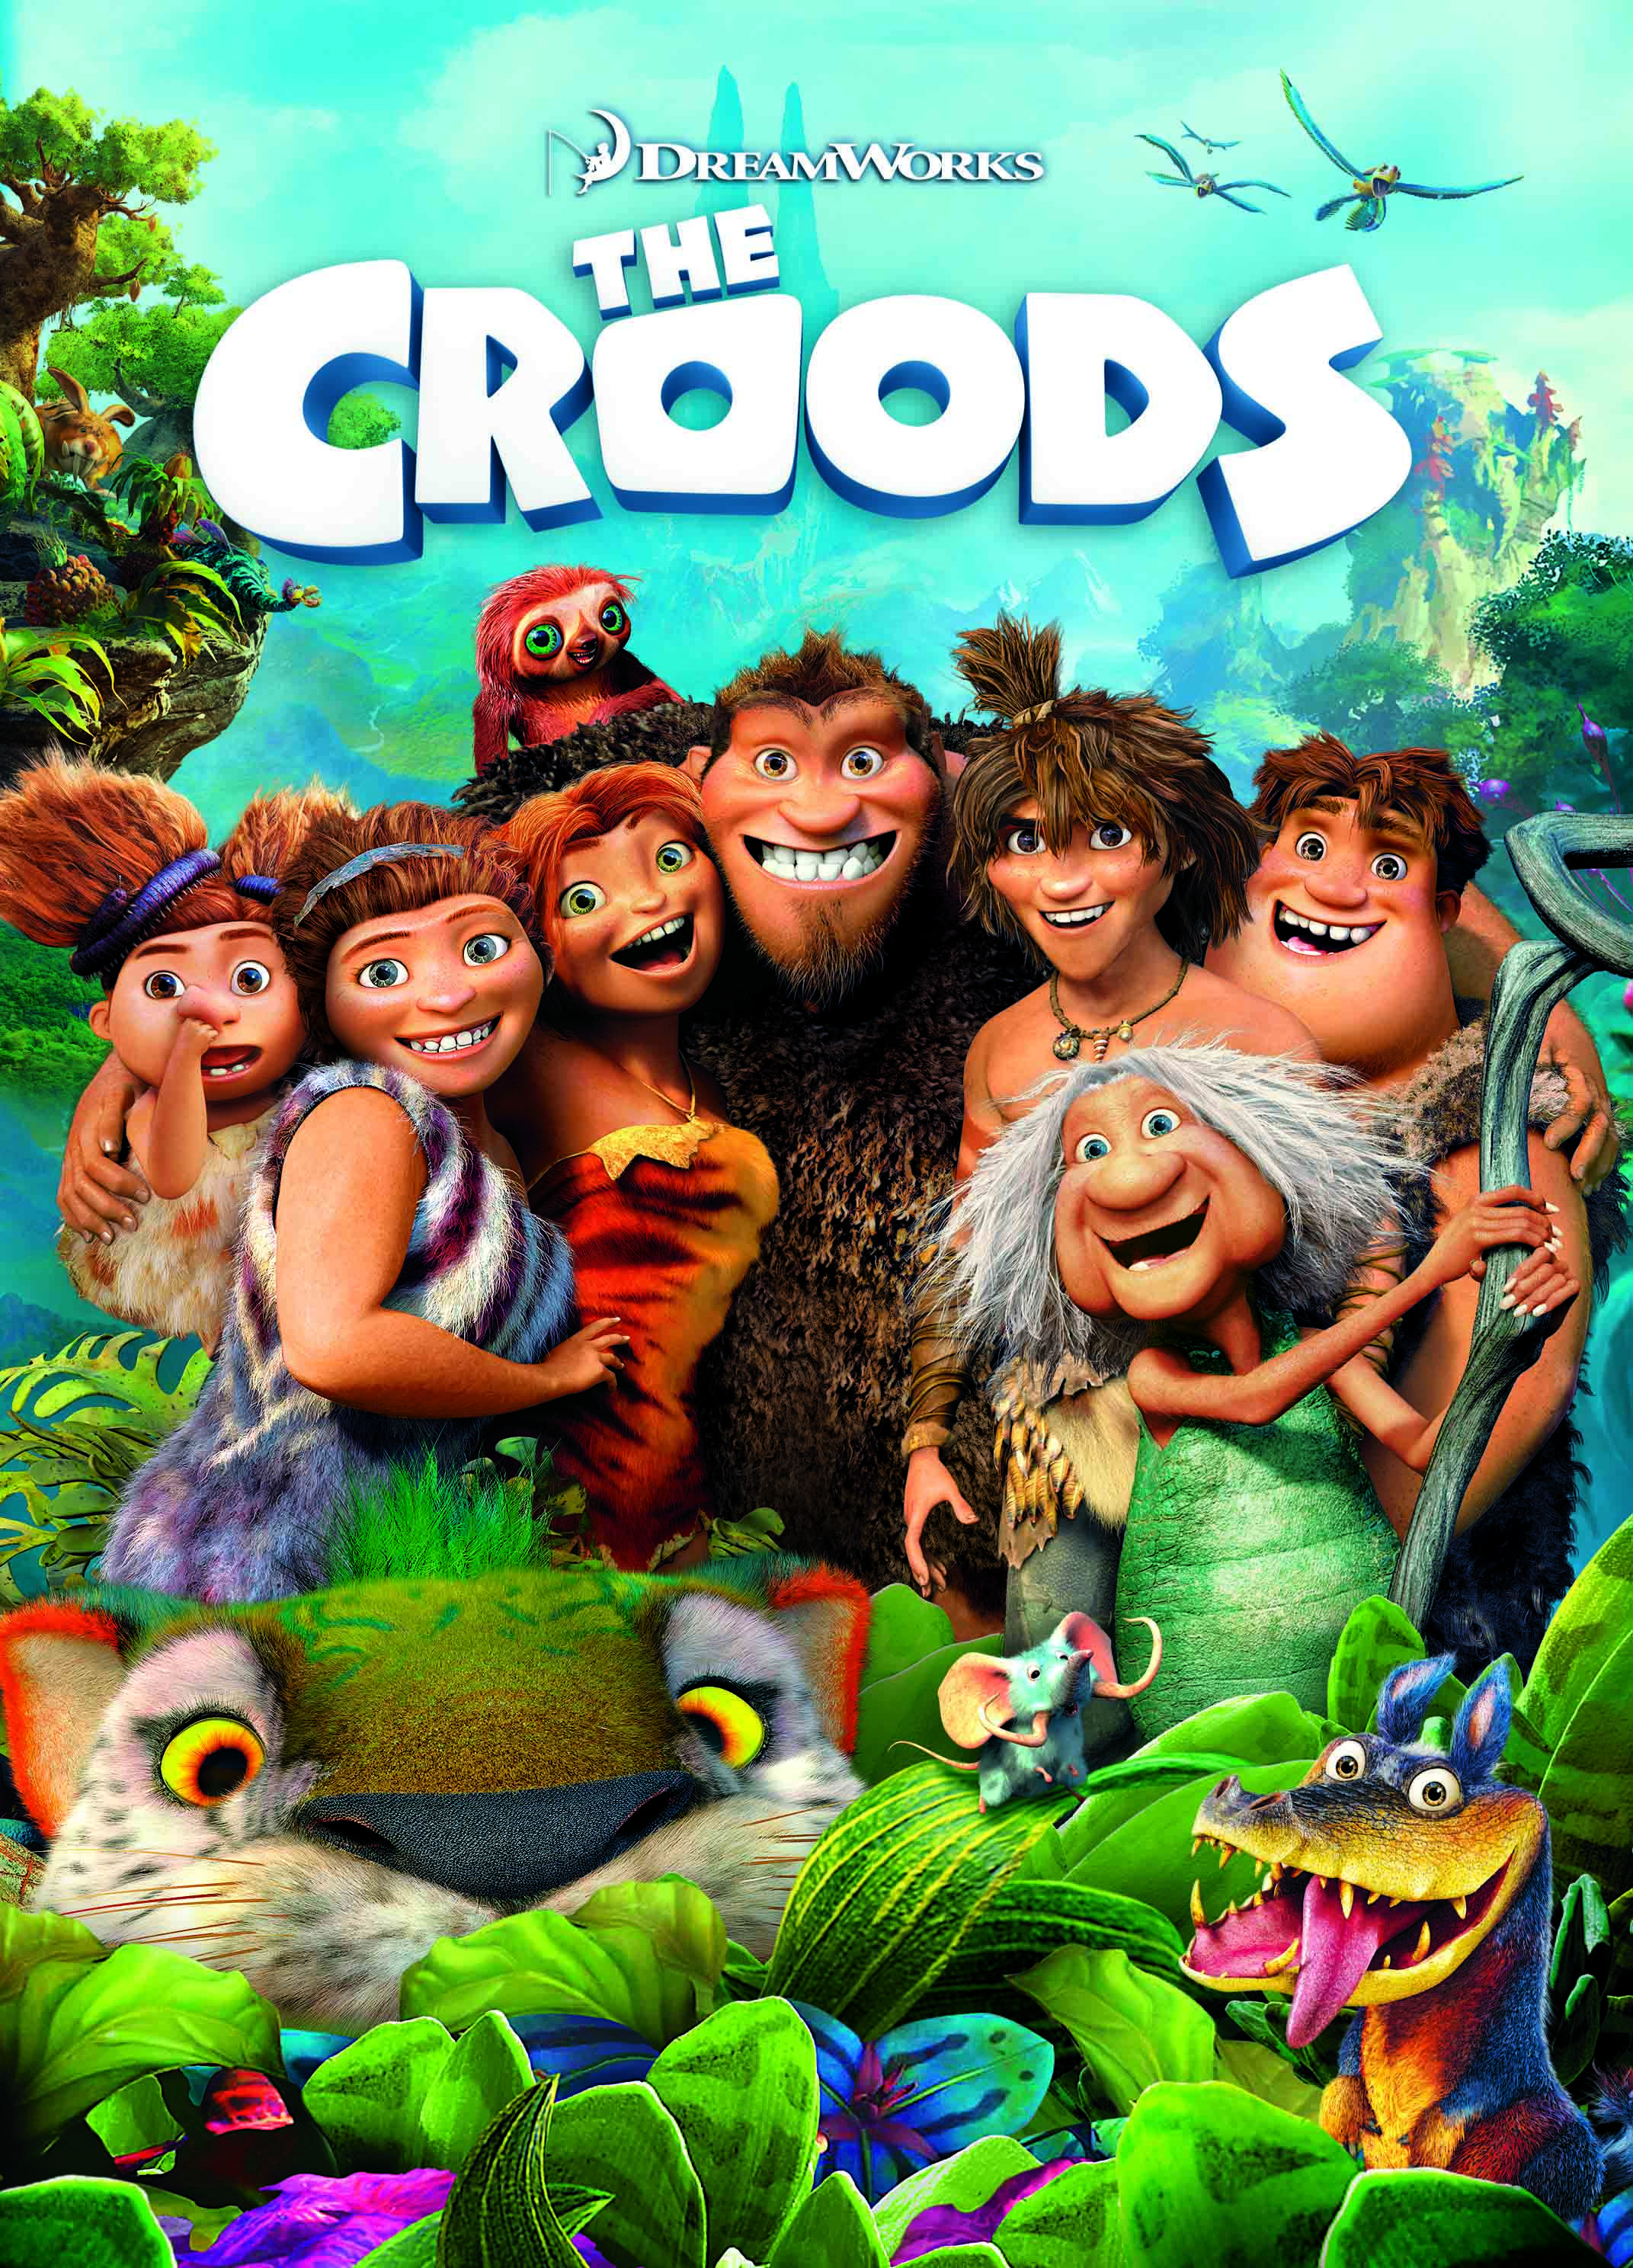 the croods are coming to dvd on october 1st | movie, dreamworks and